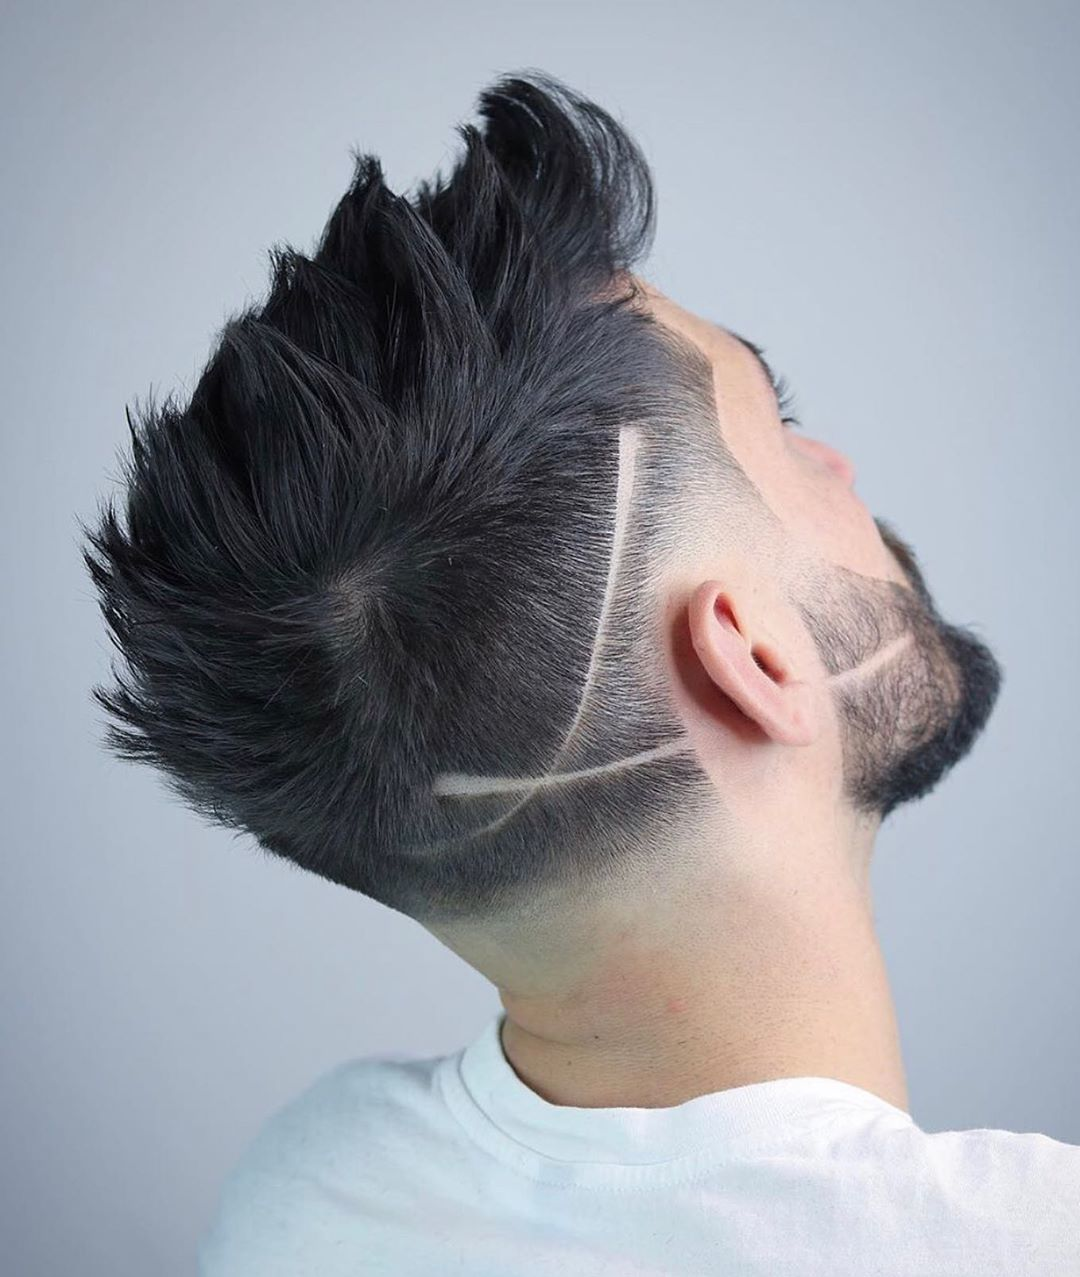 Senior short styles are popular today, as they lend a youthful look to women over 60. 69 Best Undercut Hairstyles For Men To Try In 2021 Peaky Blinders Hair